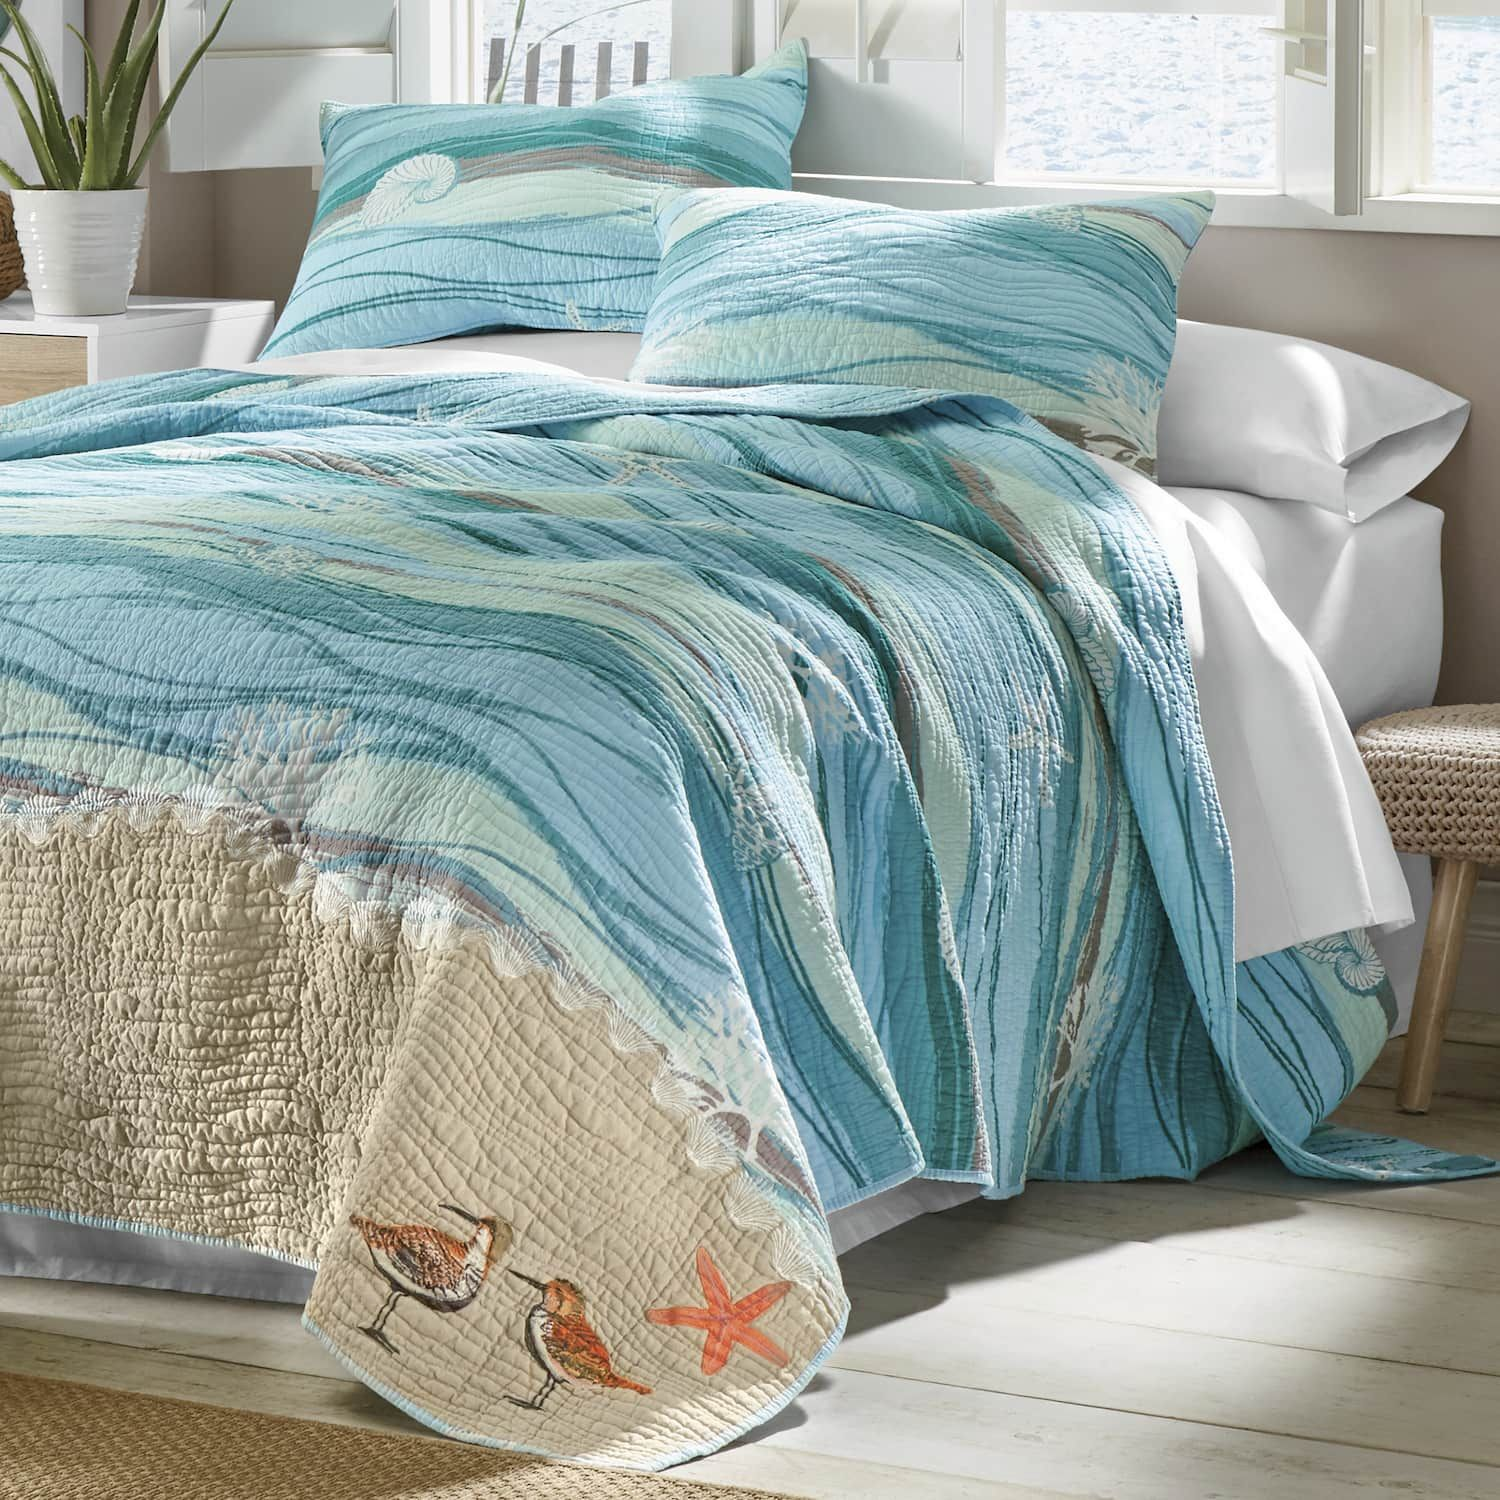 Melbourne Oversized Quilt, Sham, Pillow And Shower Curtain